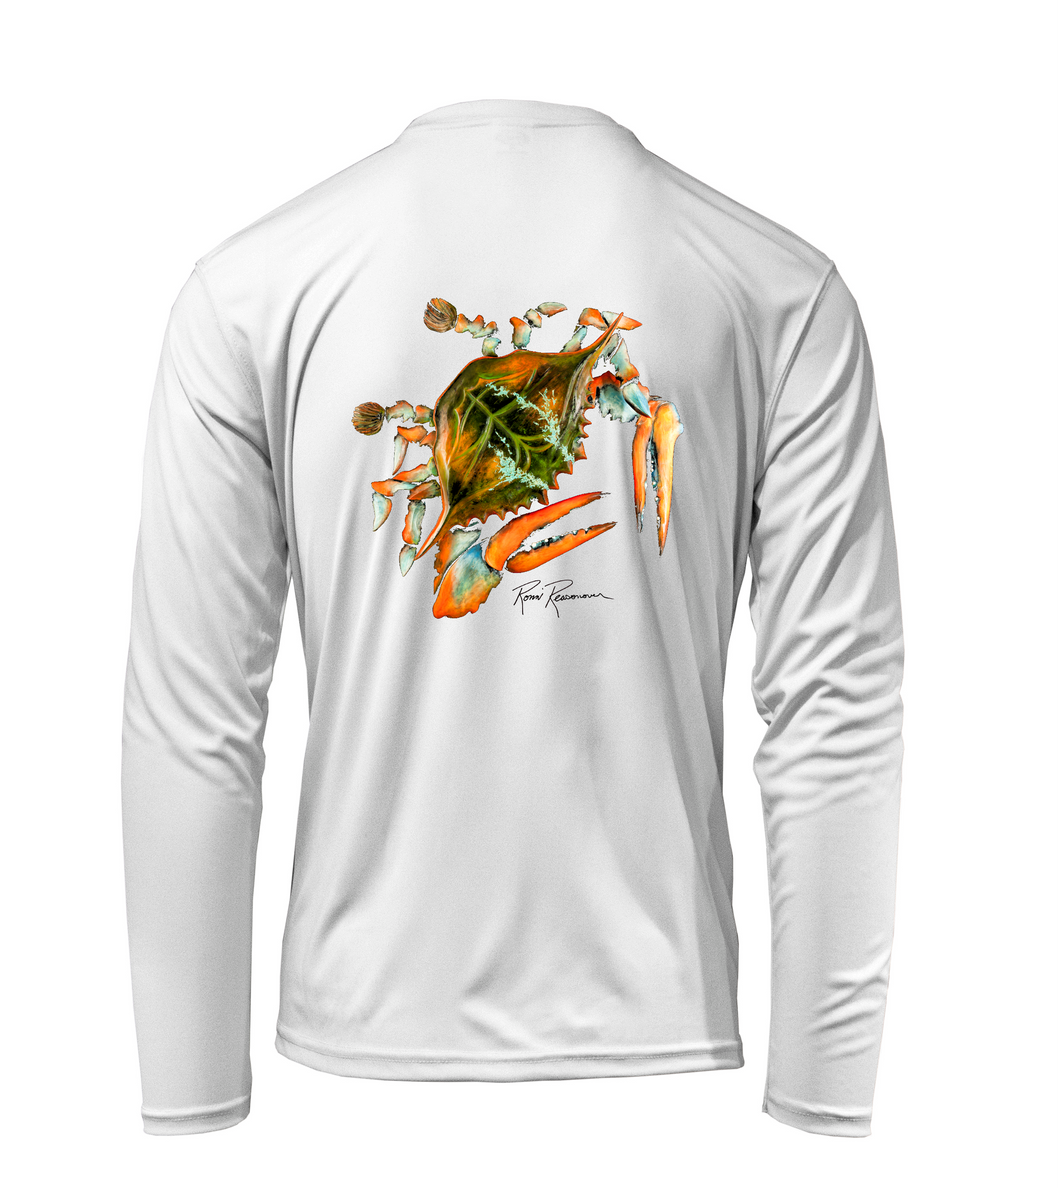 Ronnie Reasonover, The Crab, Performance Long Sleeve Shirt in Marine White